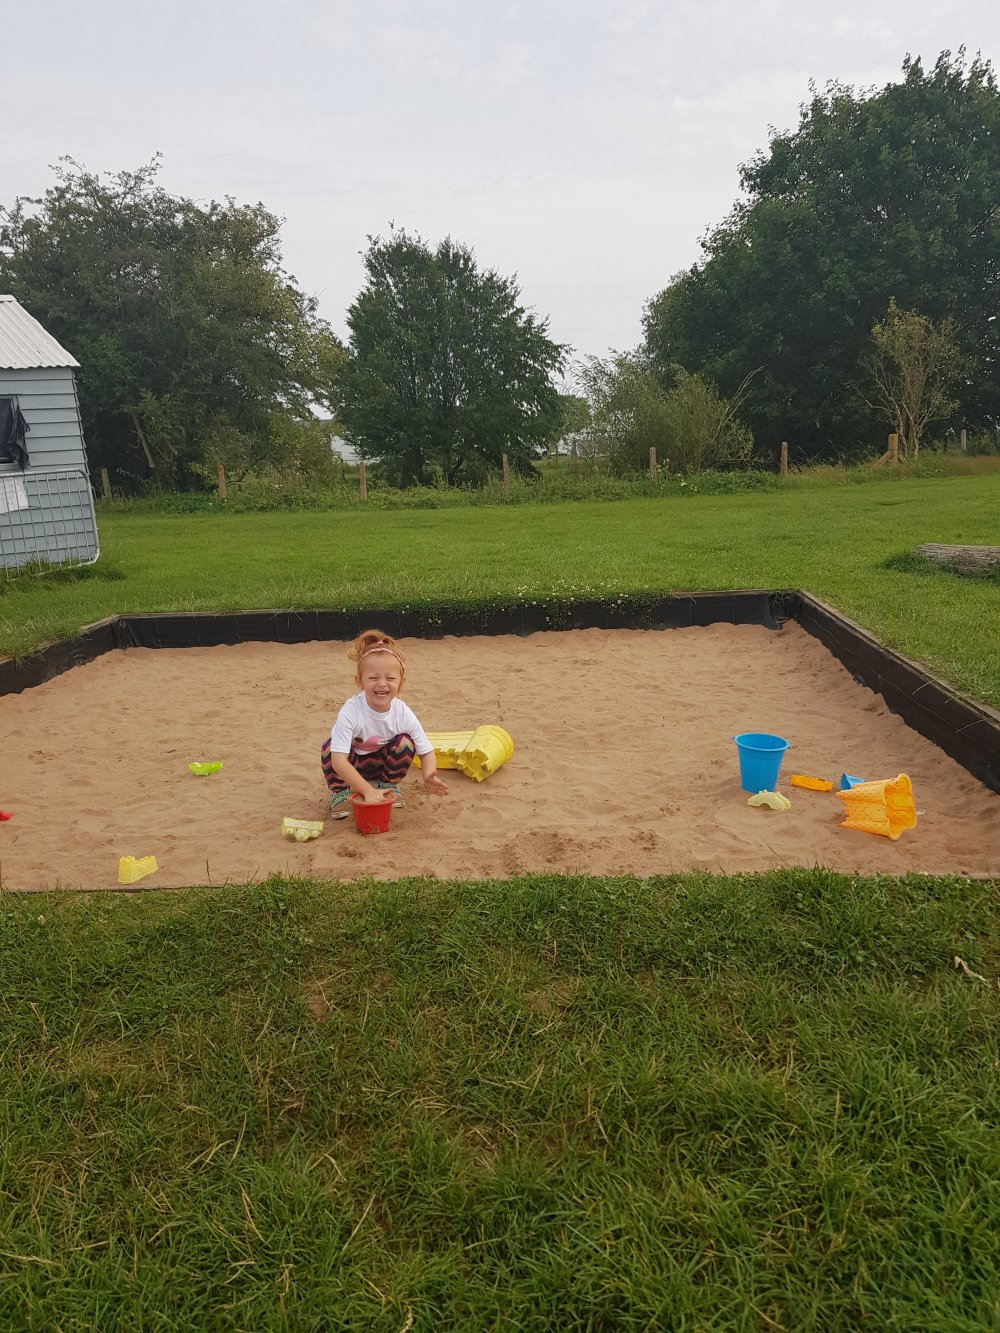 Loving the sandpit at Cattows